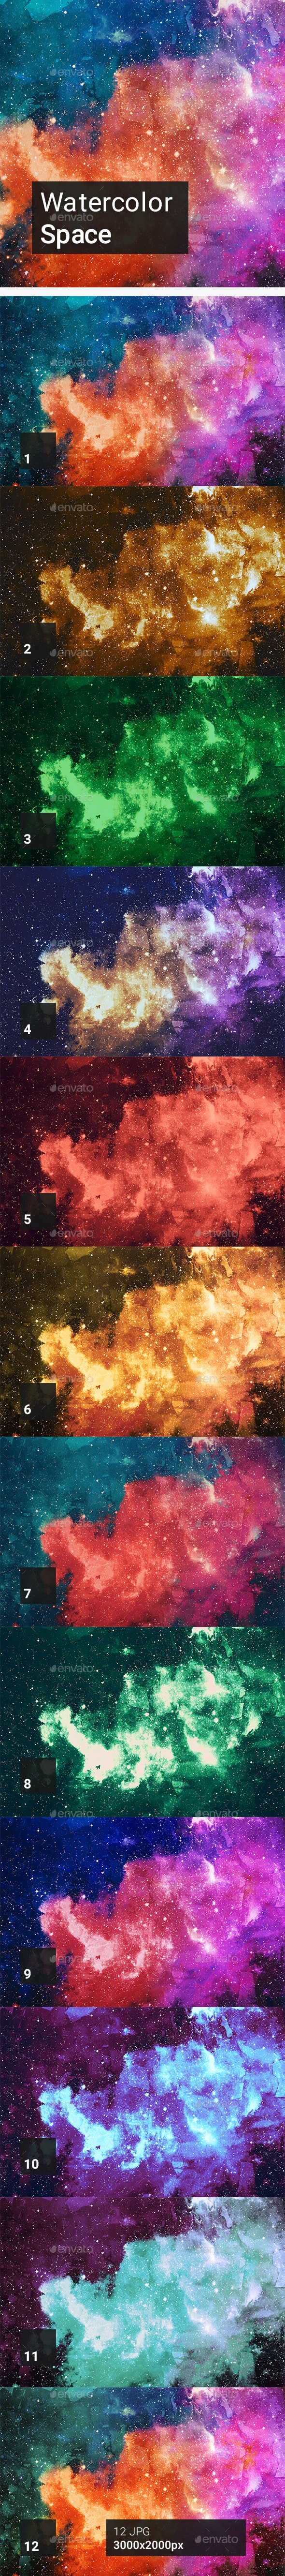 Watercolor Space Backgrounds - Abstract Backgrounds